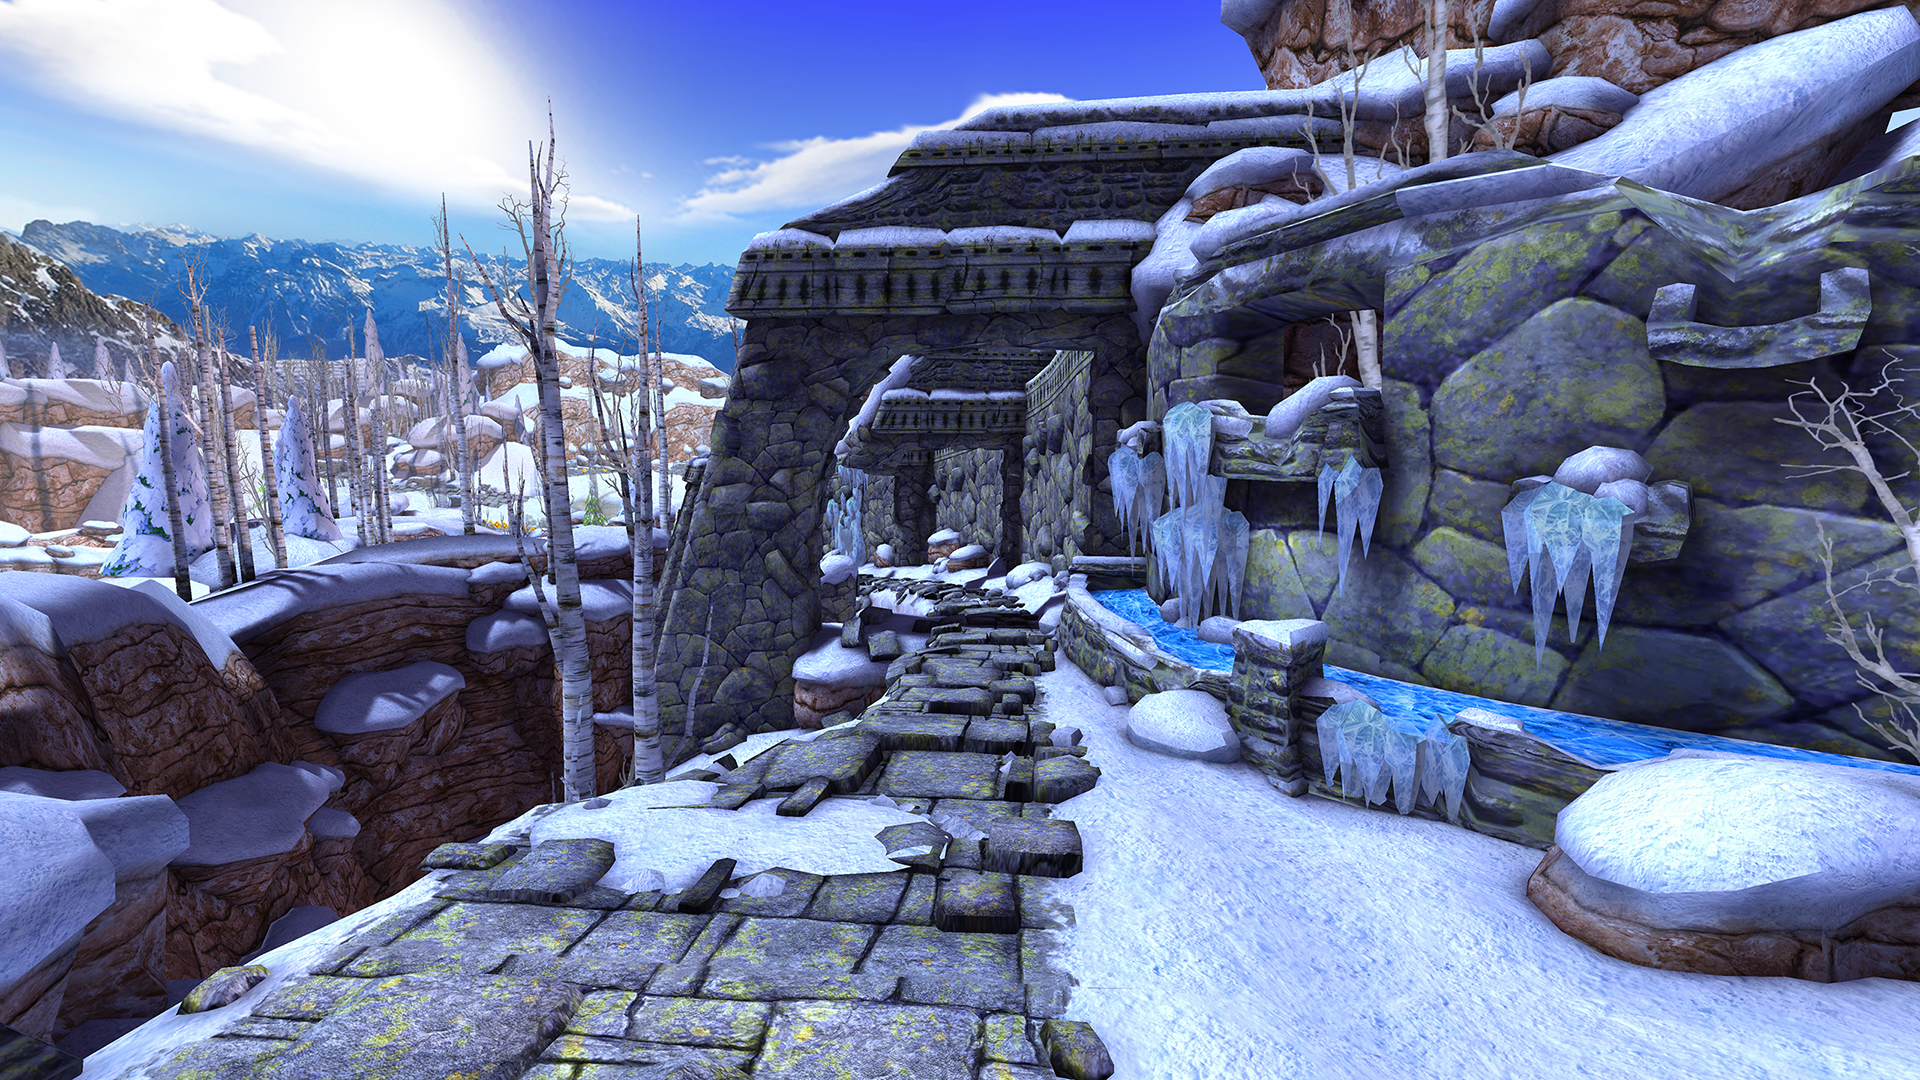 Virtual reality Temple Run is a free first-person endless runner